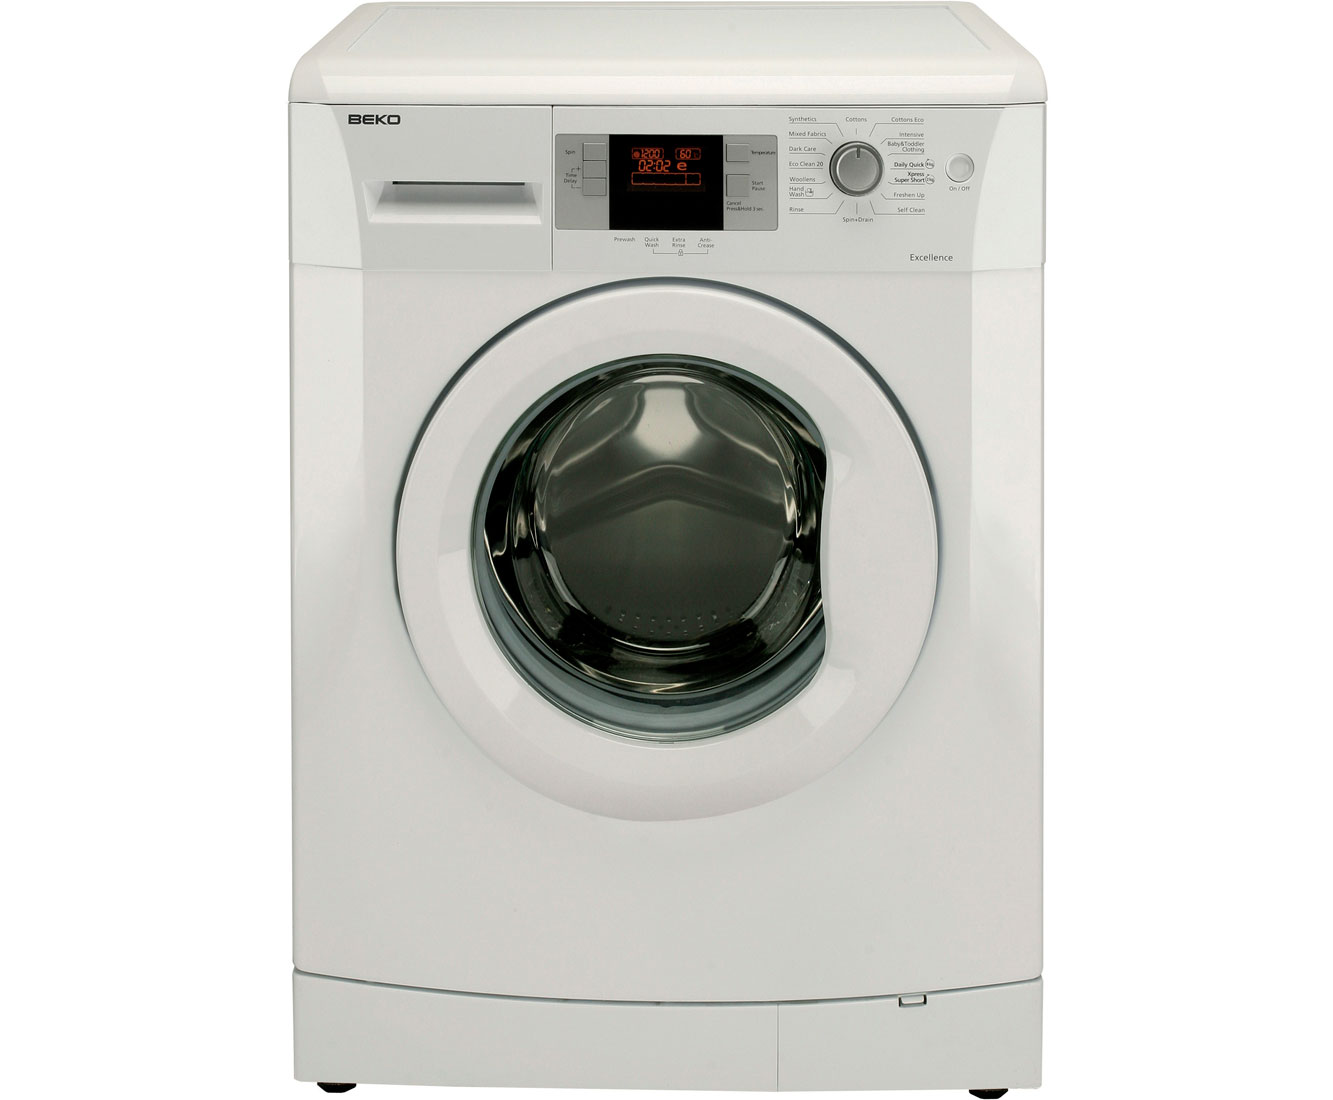 Beko WMB71642W 7Kg Washing Machine with 1600 rpm - White